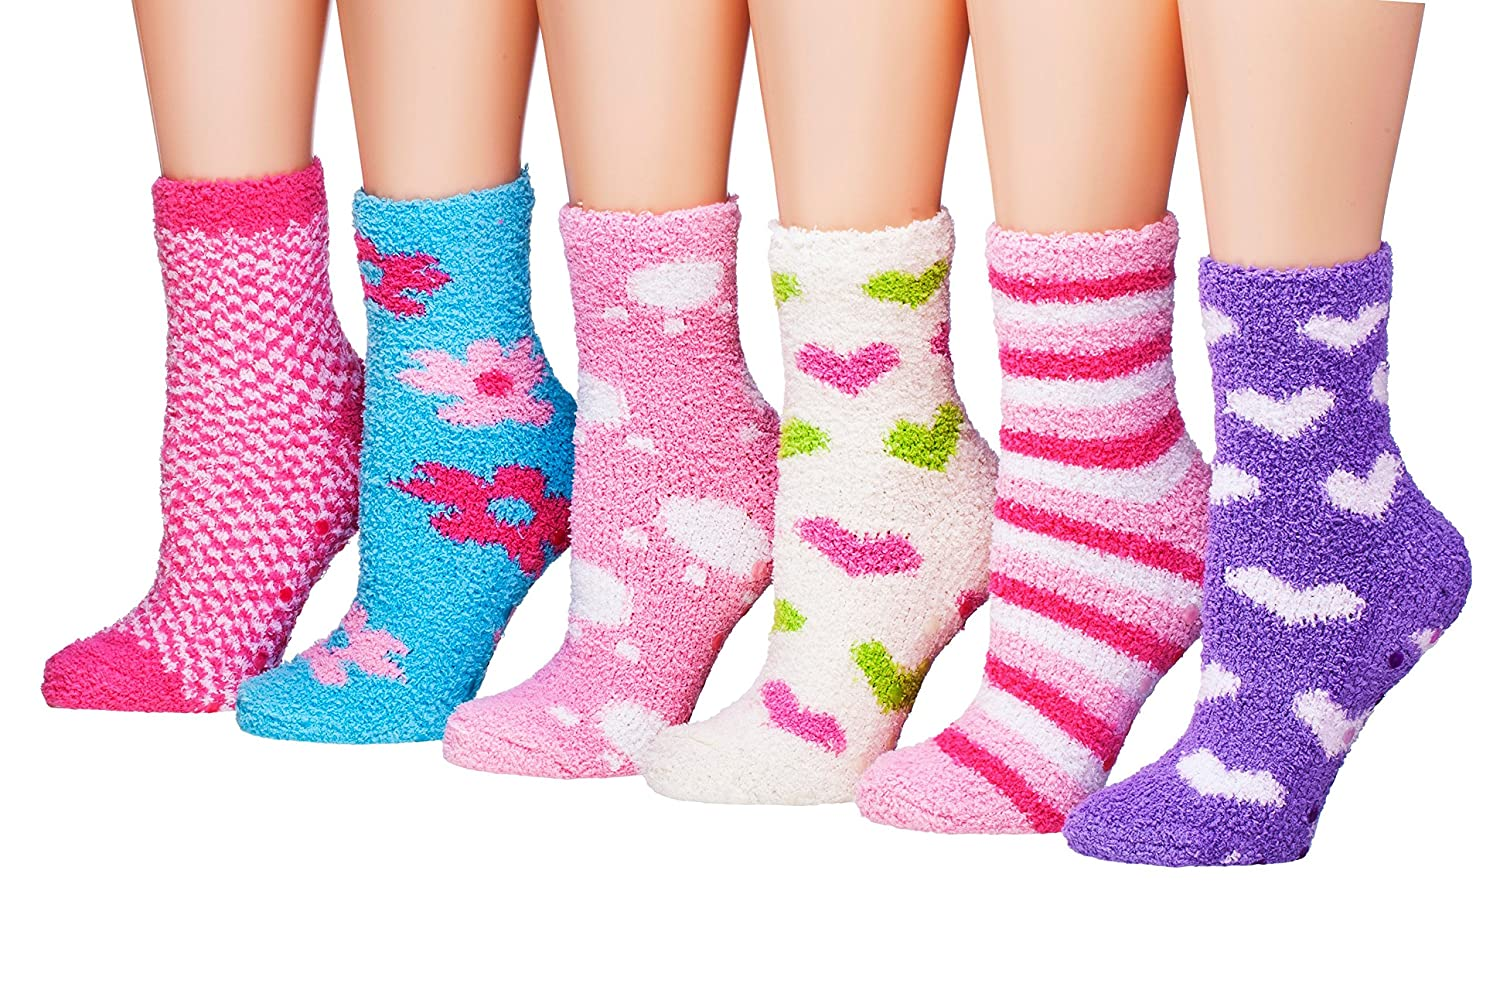 Tipi Toe Womens 6-Pairs Patterned /& Solid Anti-Skid Soft Fuzzy Crew Socks